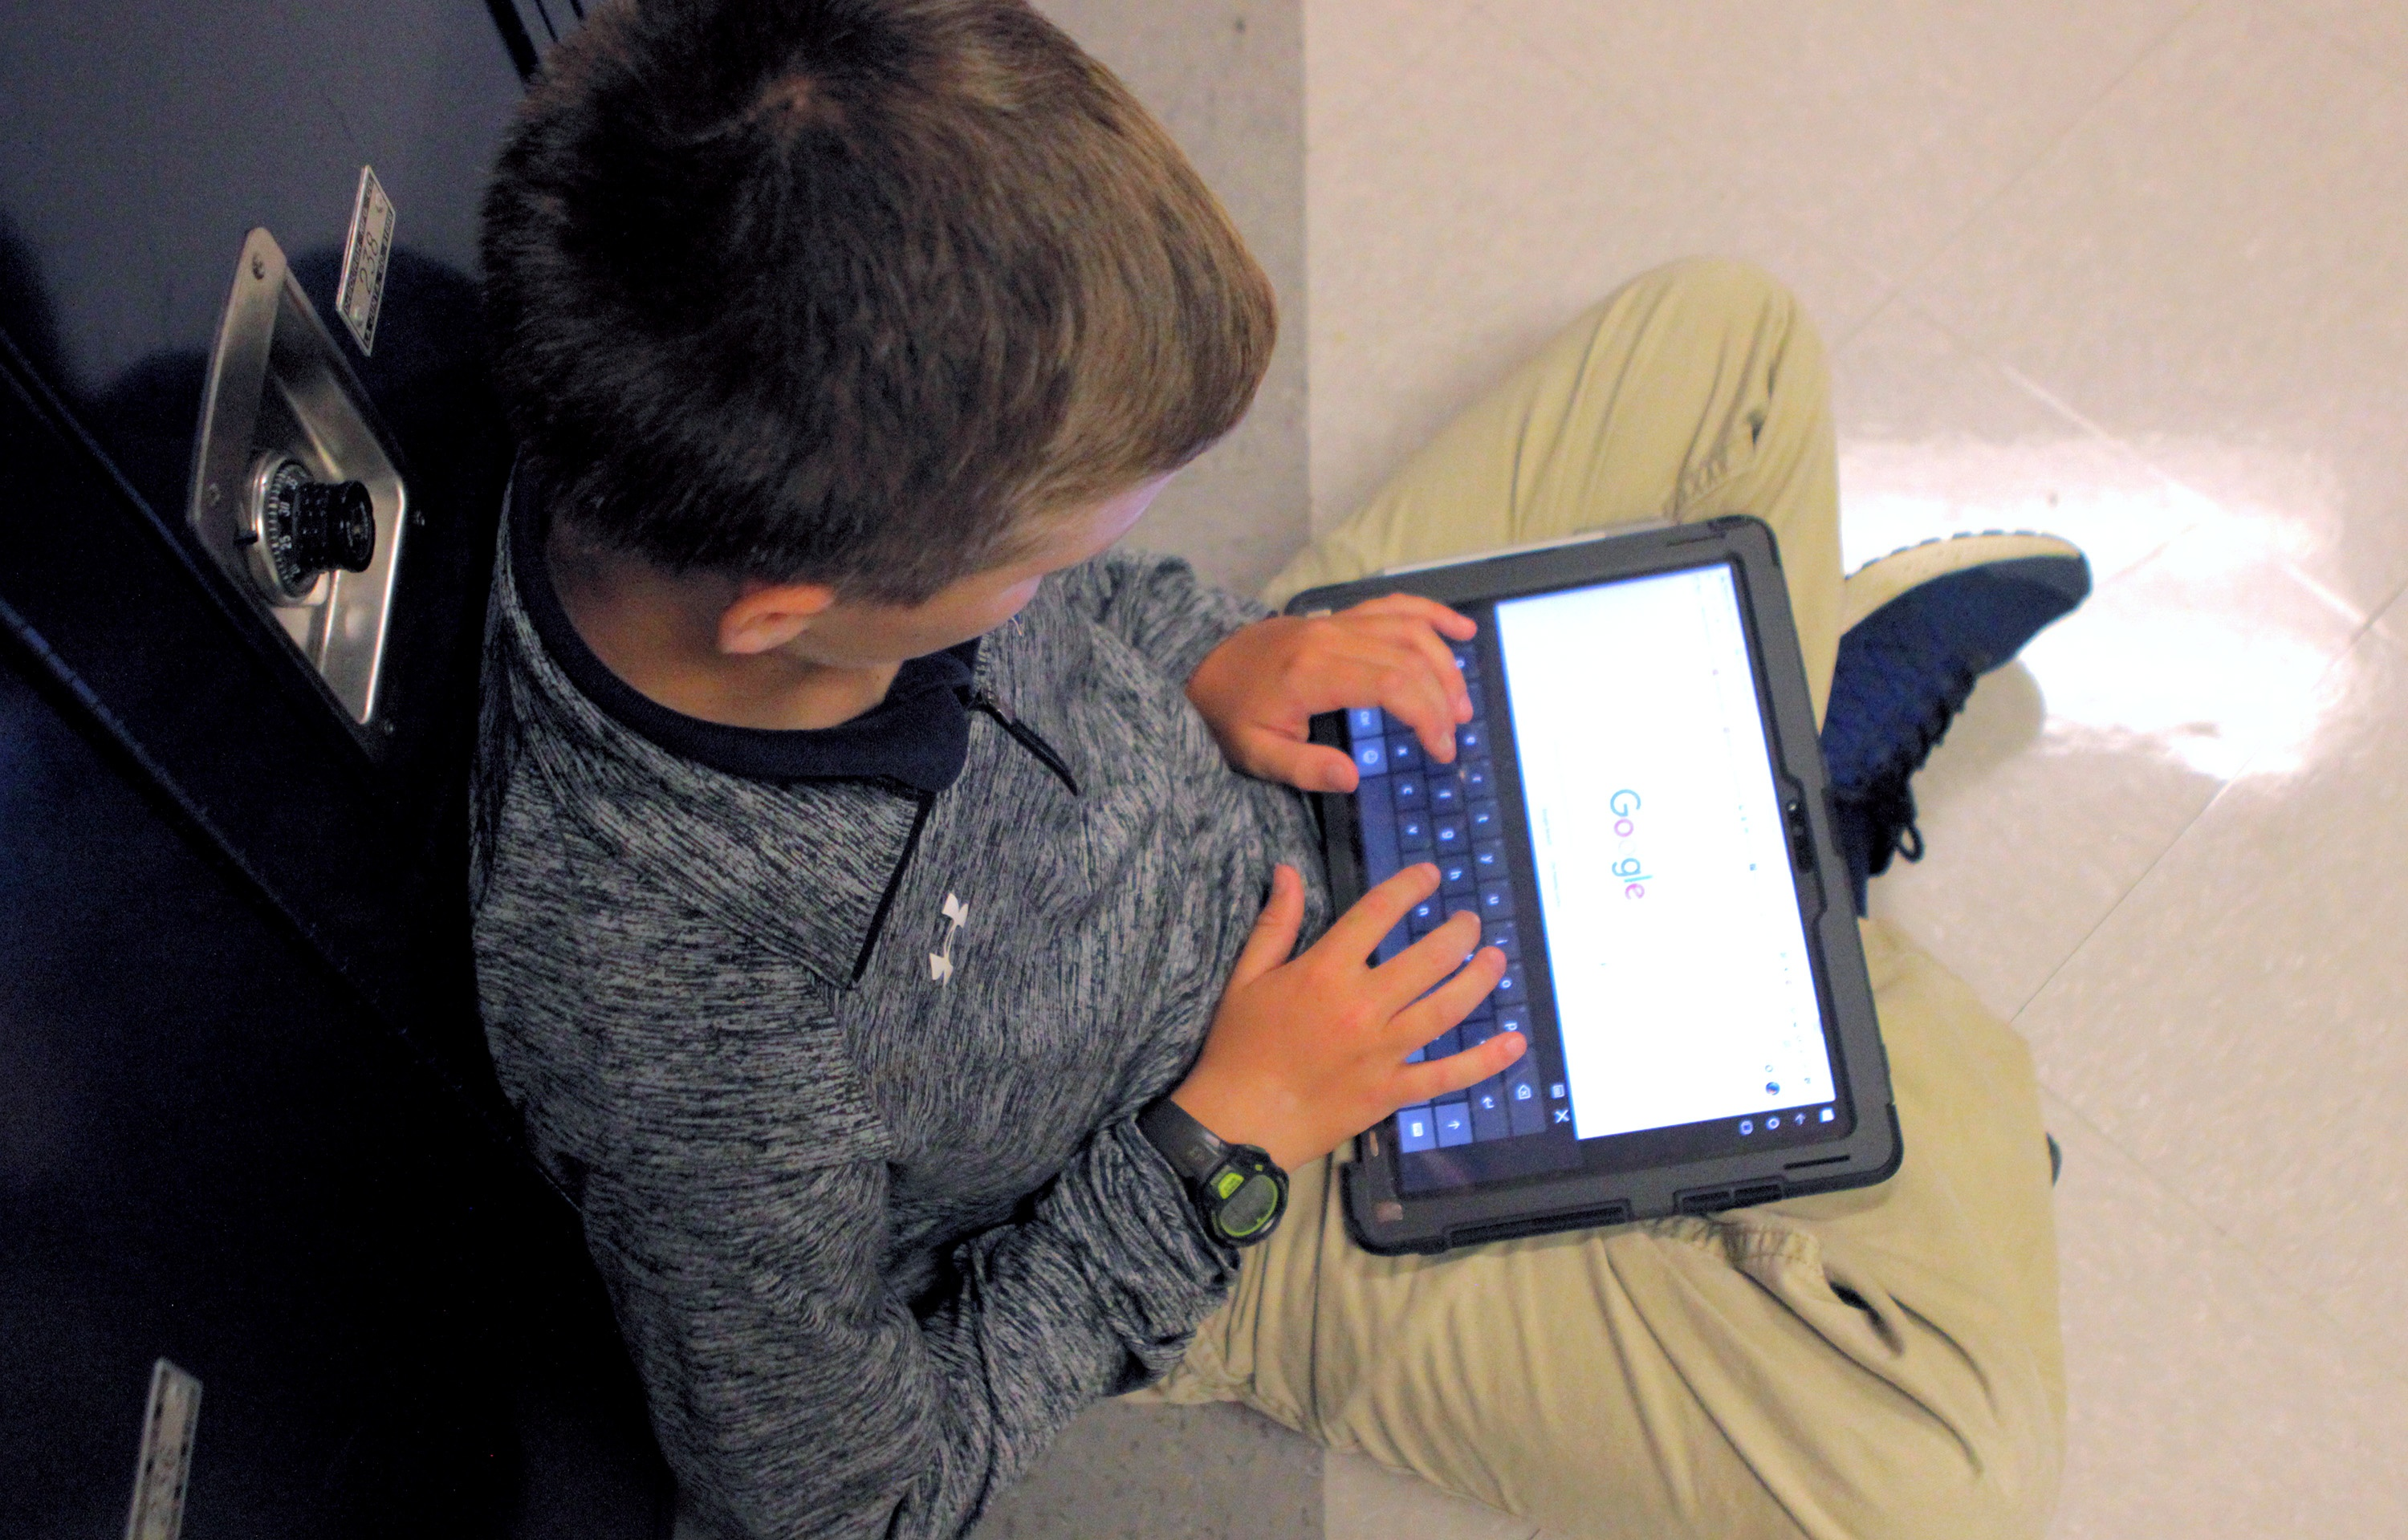 Digital Citizenship: Privacy is Paramount